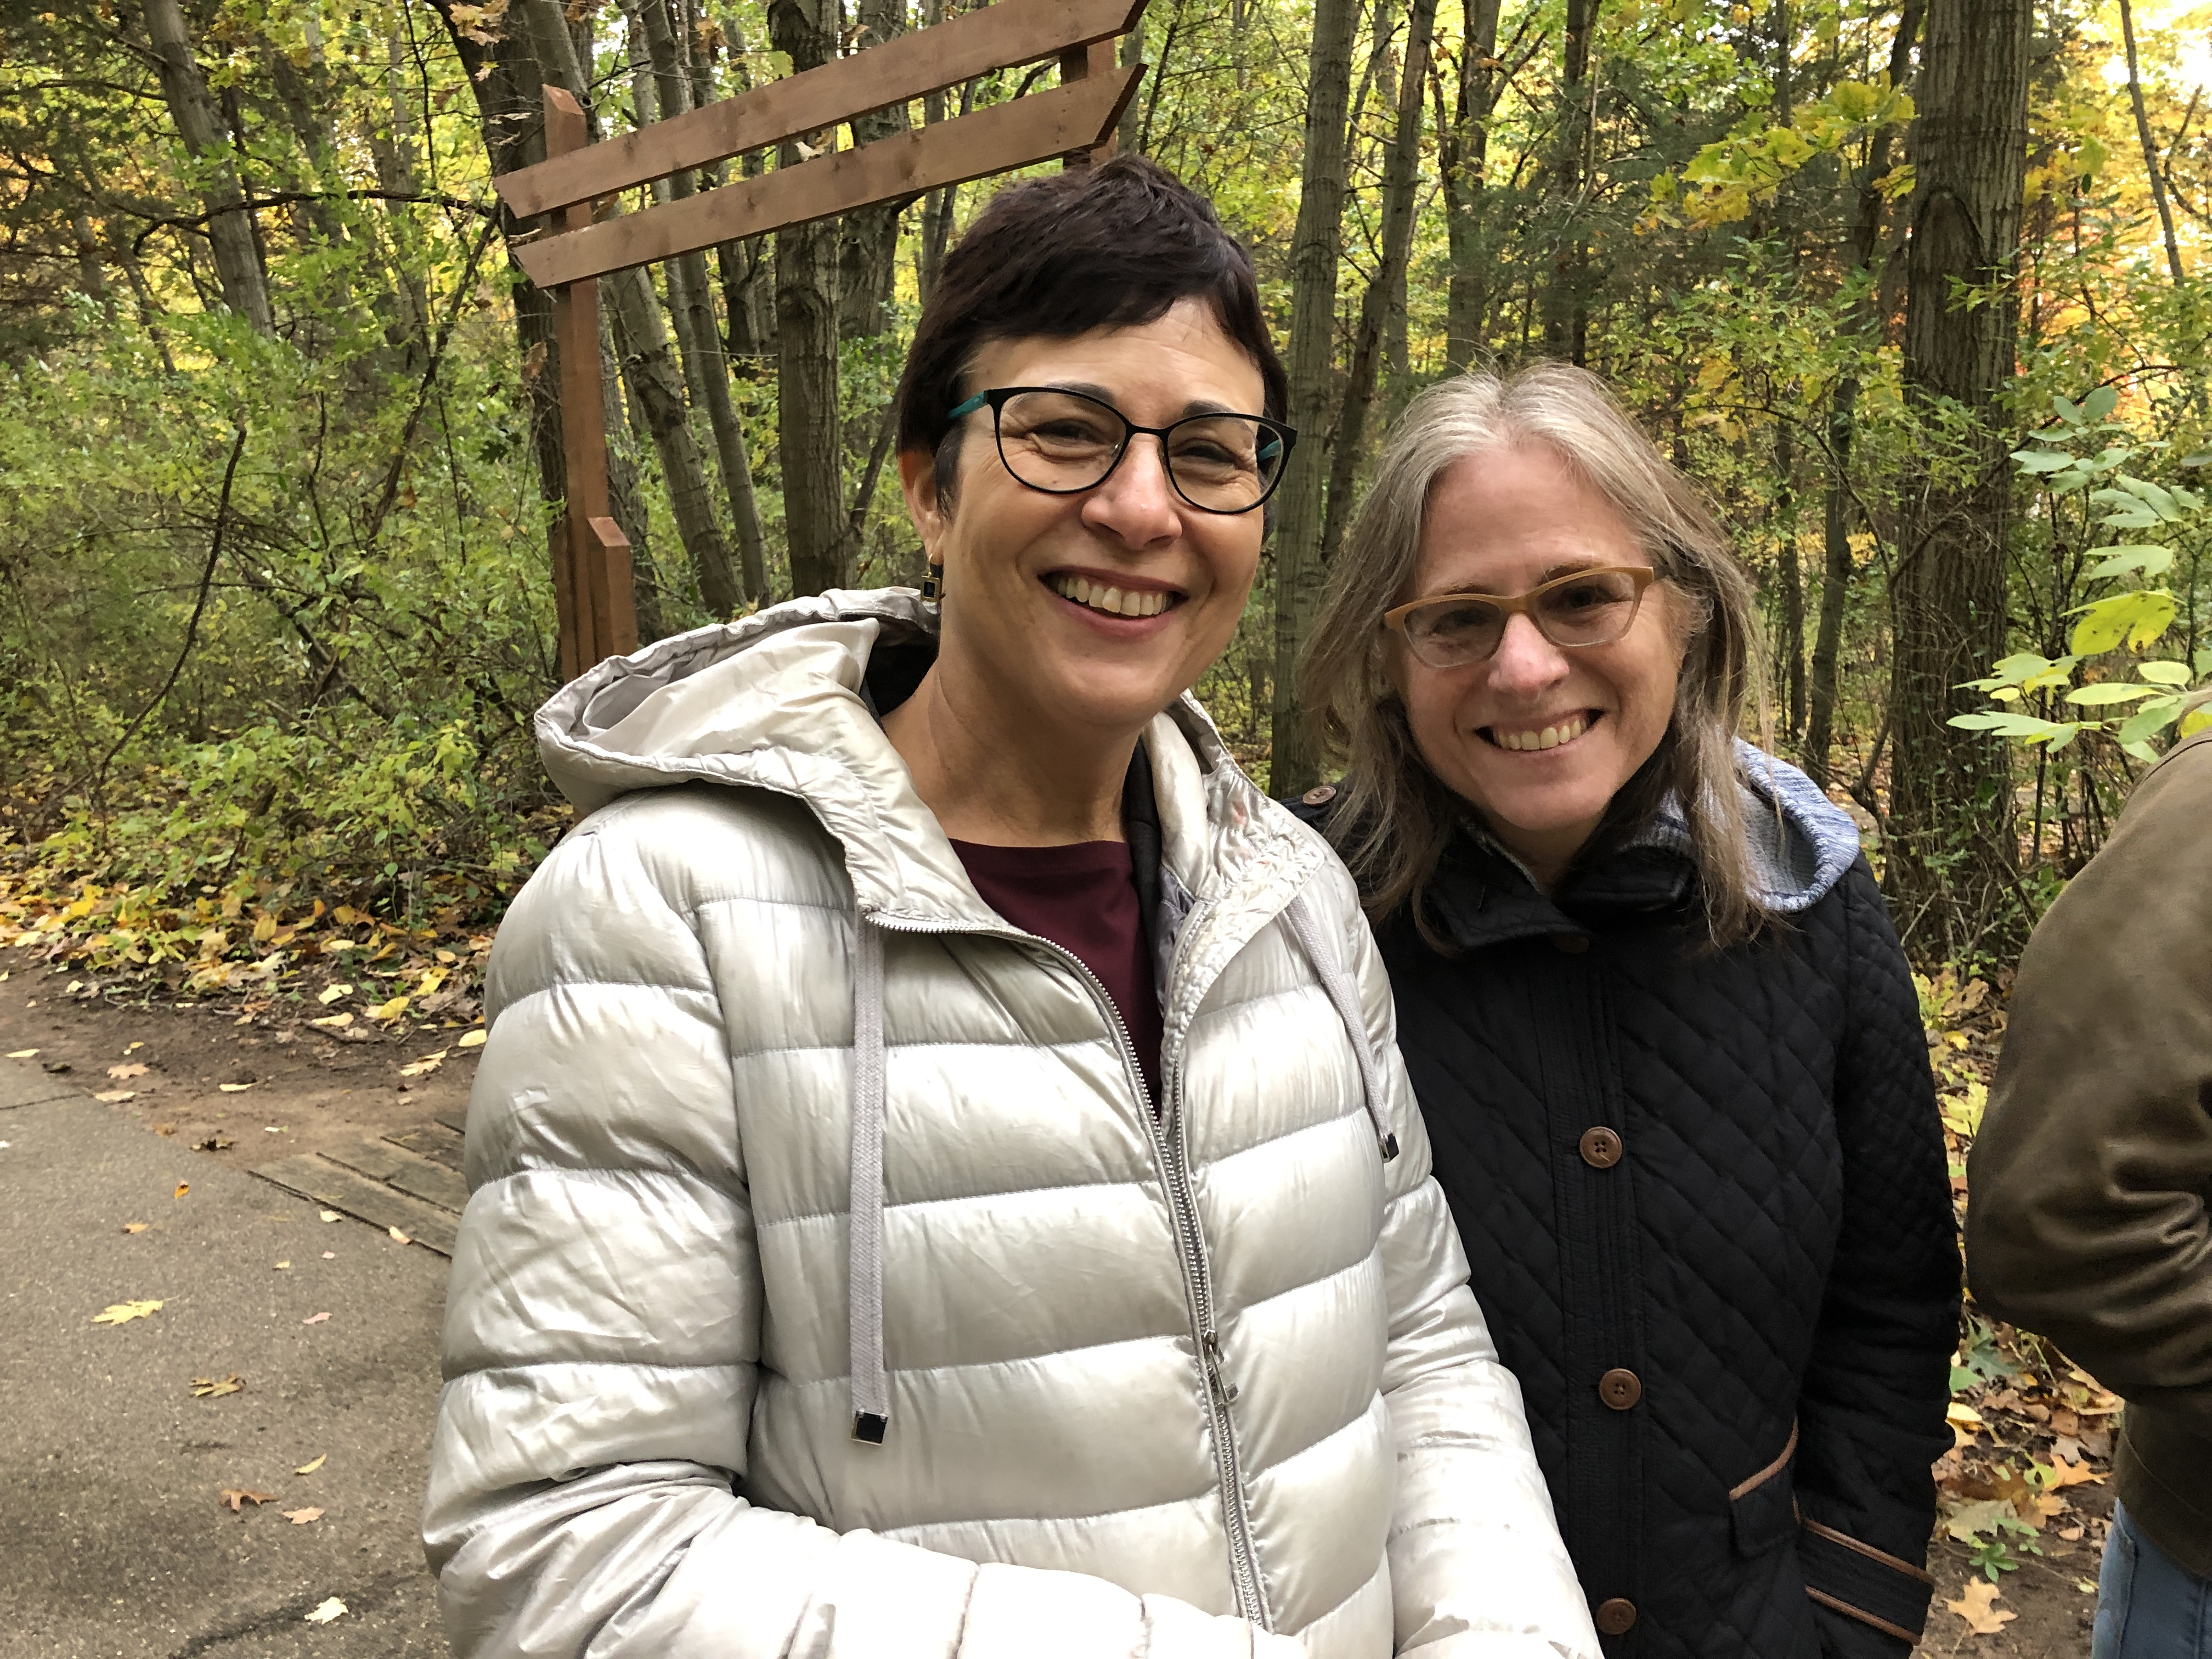 Team members Tali and Renee stand together on a wooded trail during our 2019 planning retreat